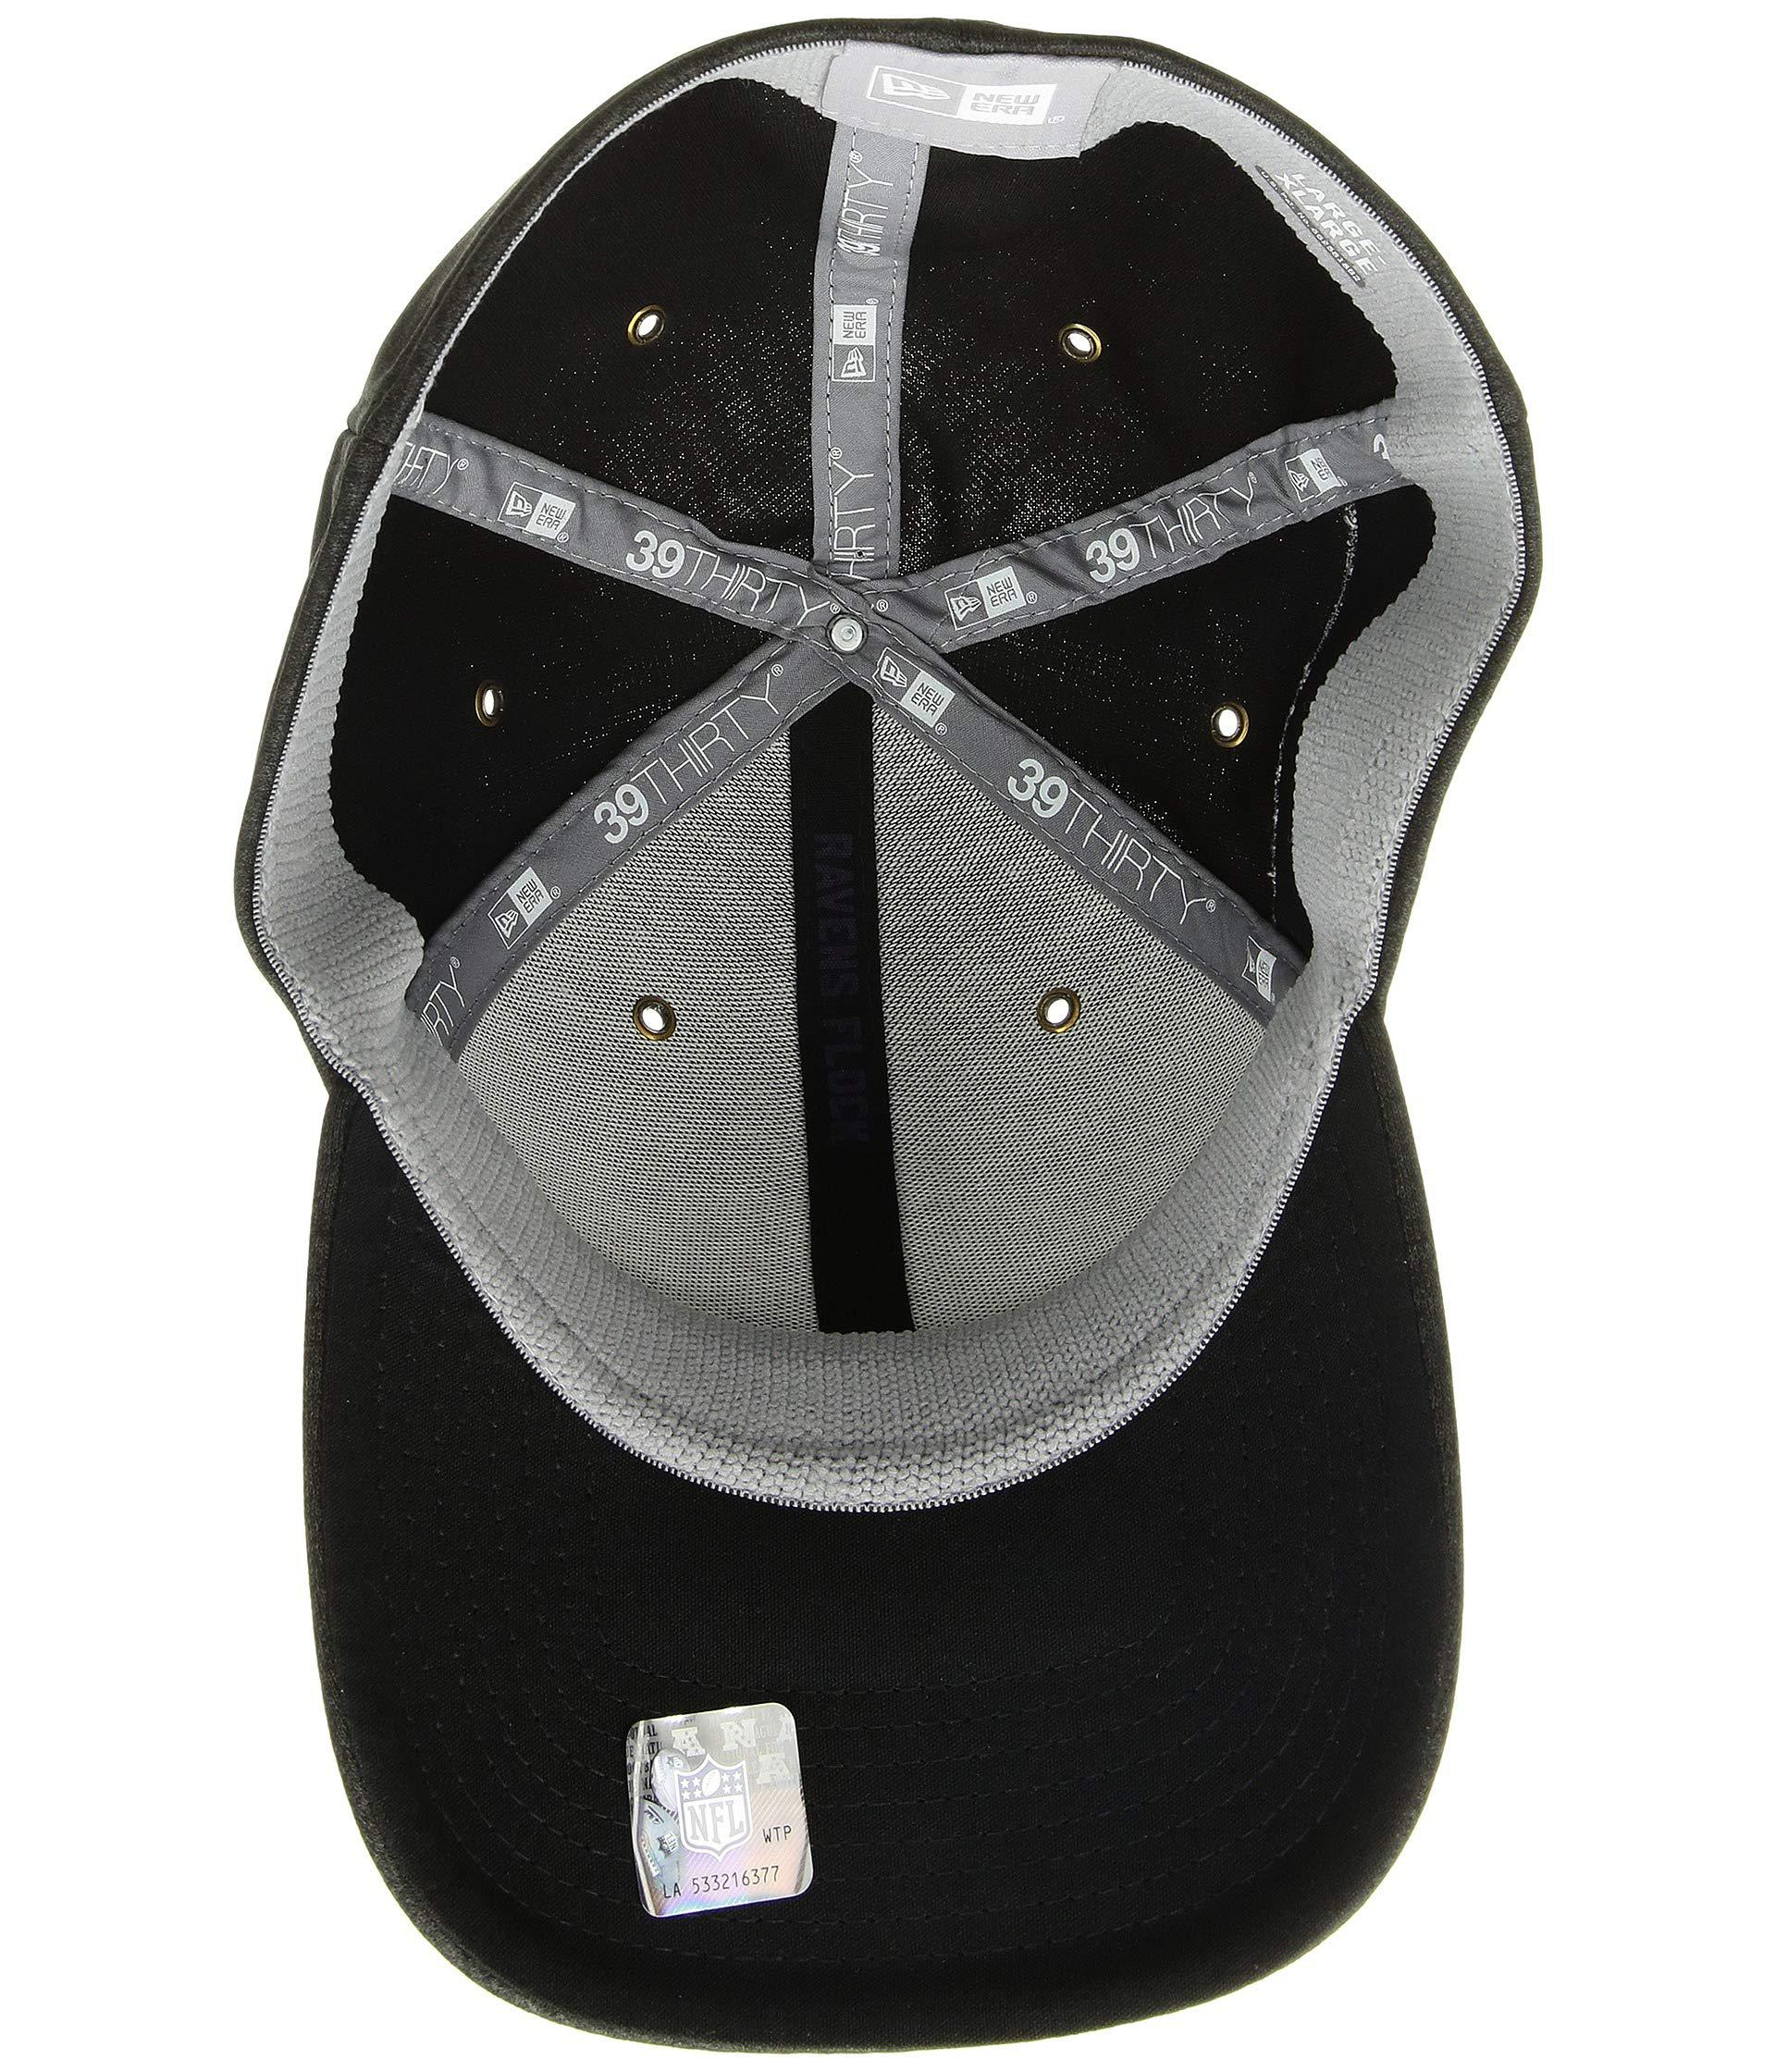 Lyst - Ktz 39thirty Official Sideline Home Stretch Fit - Baltimore Ravens  (black purple) Caps in Black for Men 9262919b0